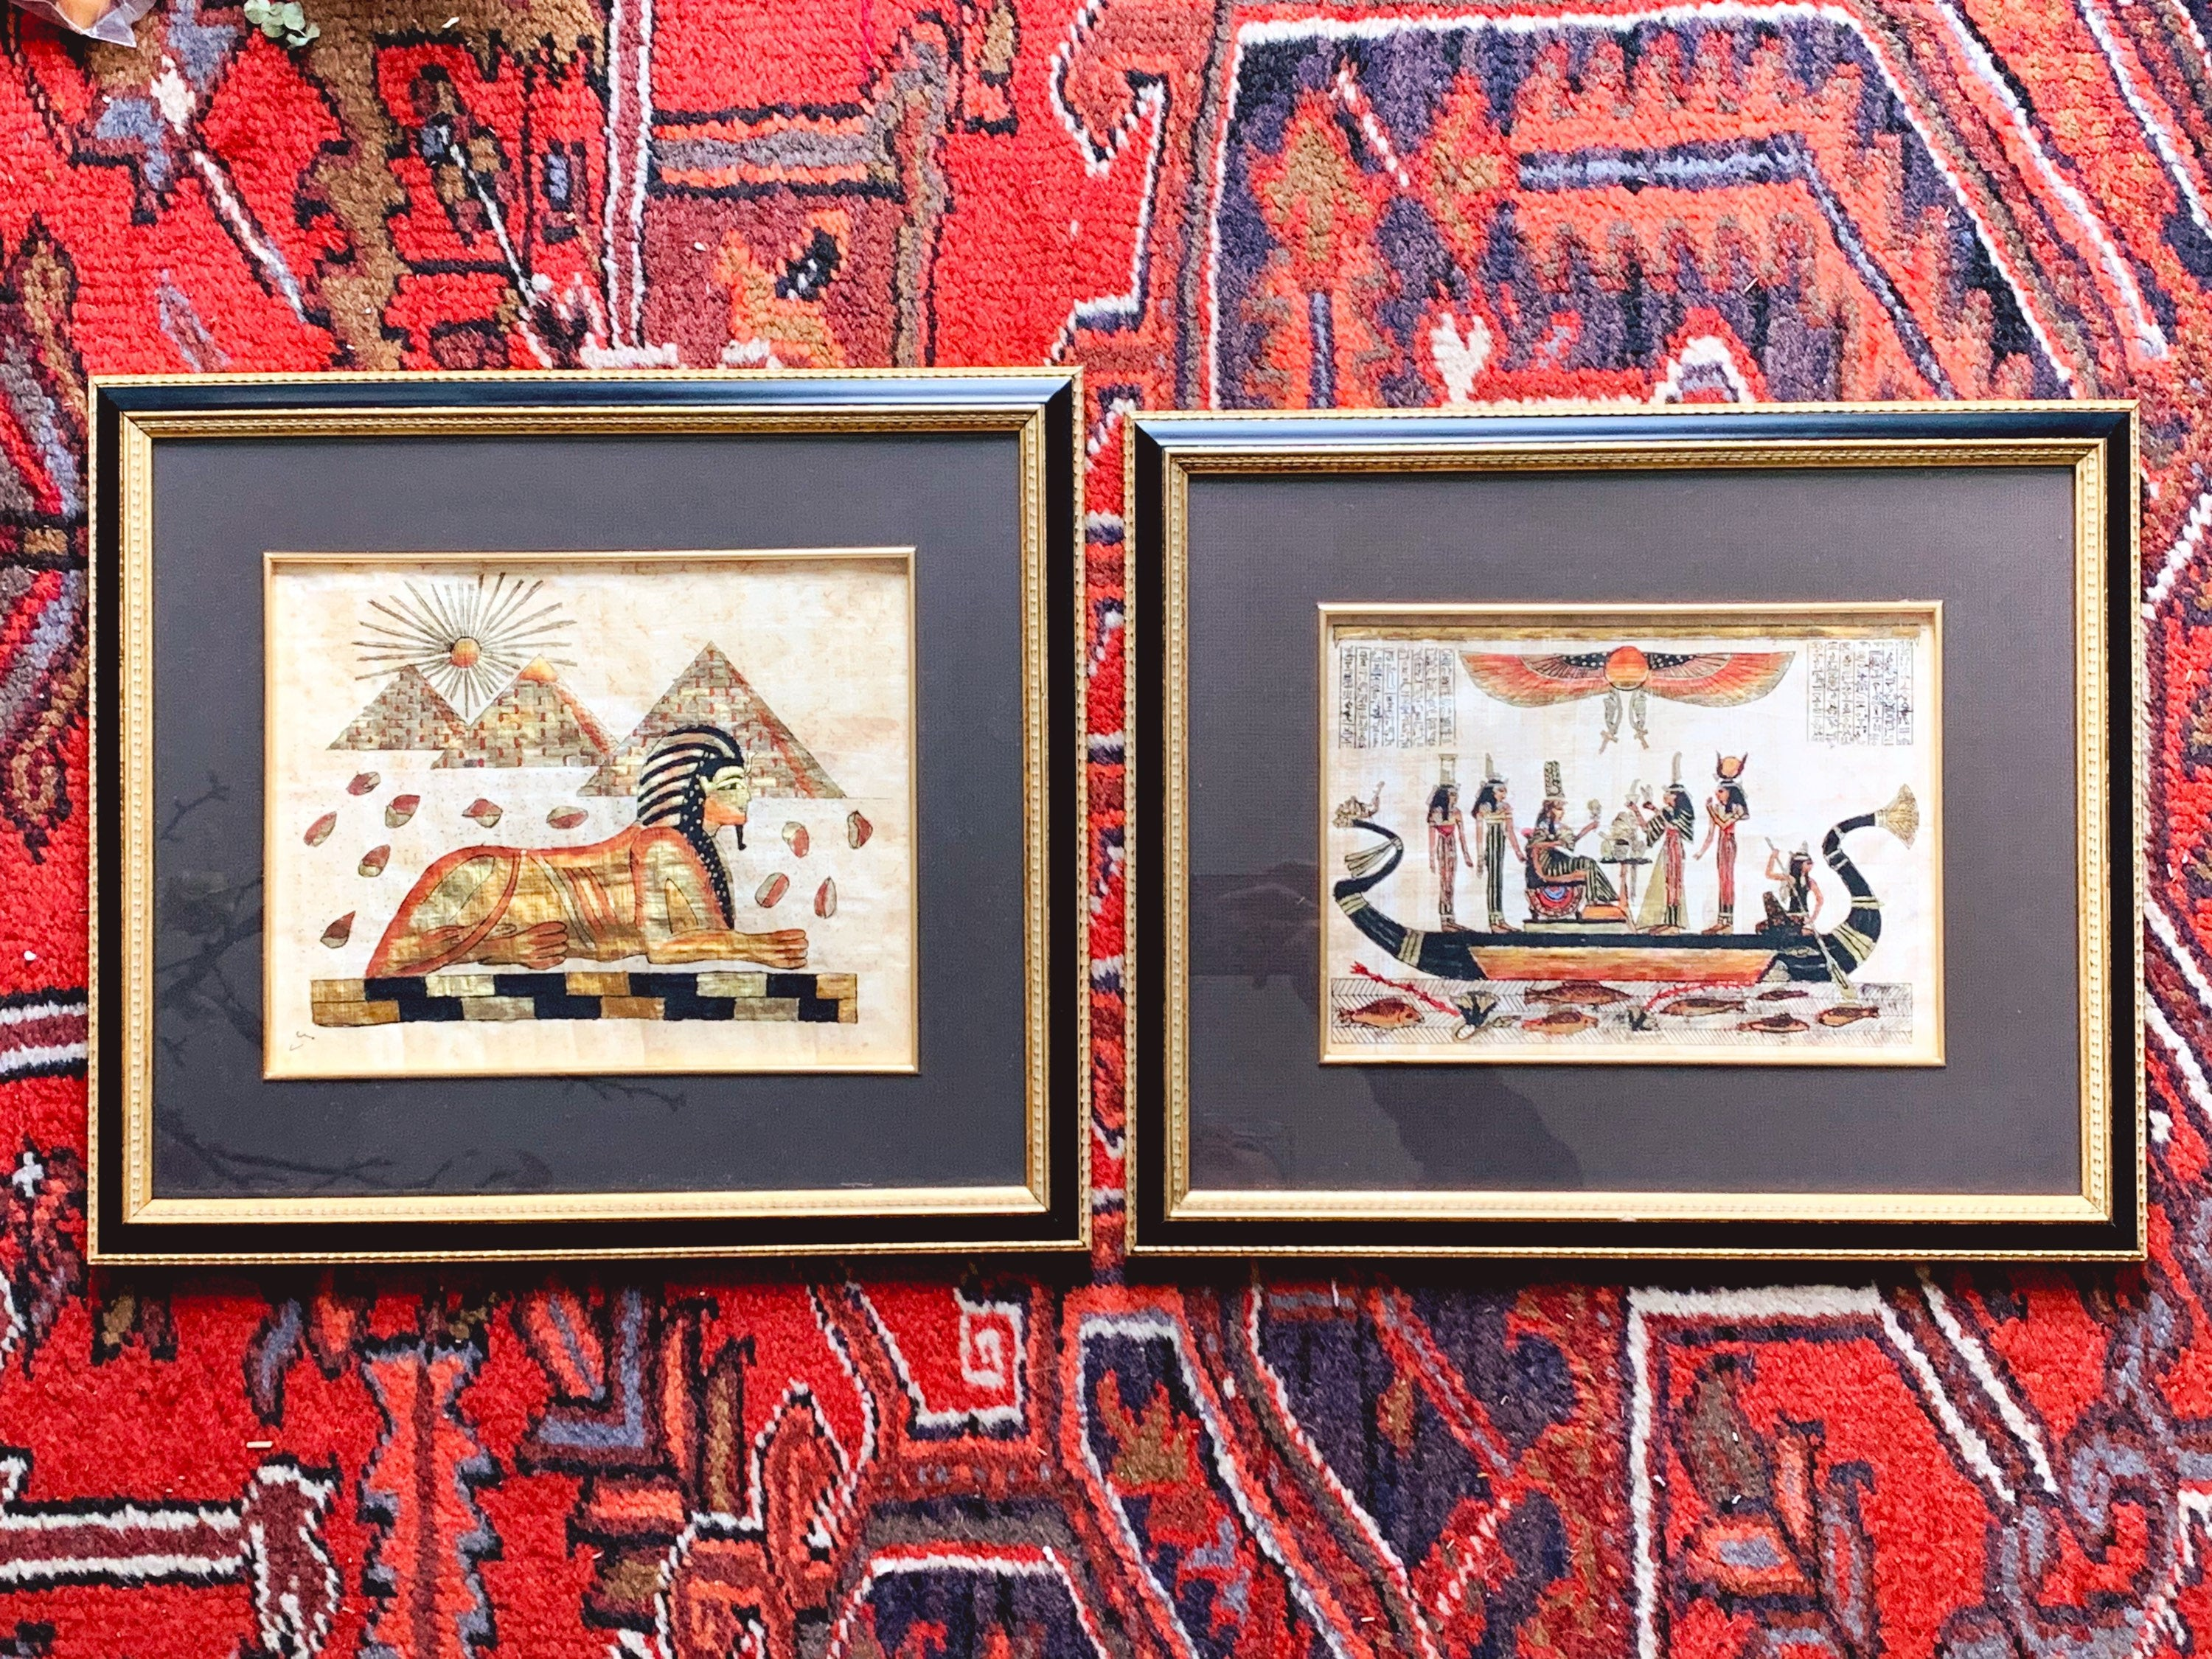 Vintage Hand Painted Egyptian Papyrus Painting in Black and Gold Wooden Frame | Collectible Art of Great Sphinx of Giza Pyramids Hieroglyphs